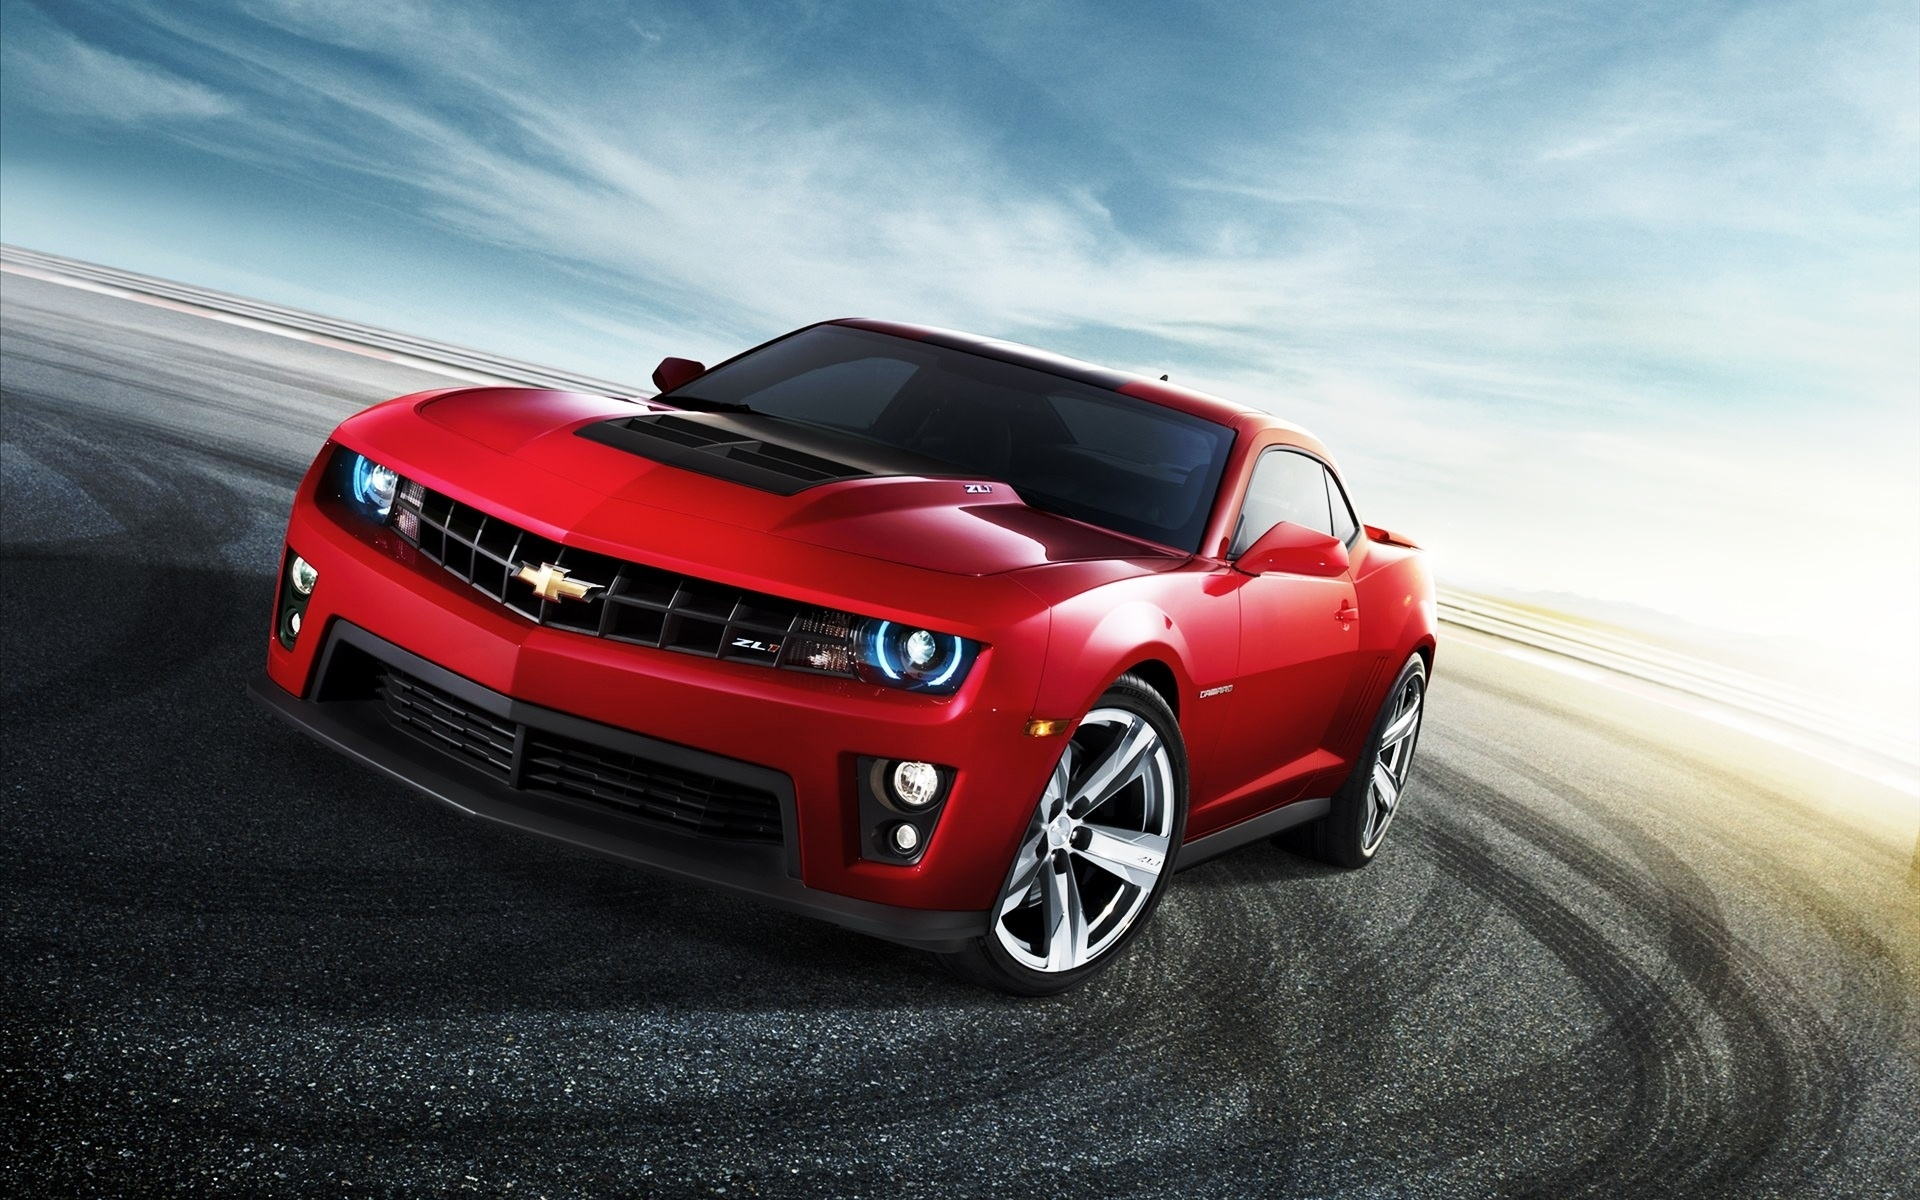 2012 chevrolet camaro wallpapers | hd wallpapers | id #9419